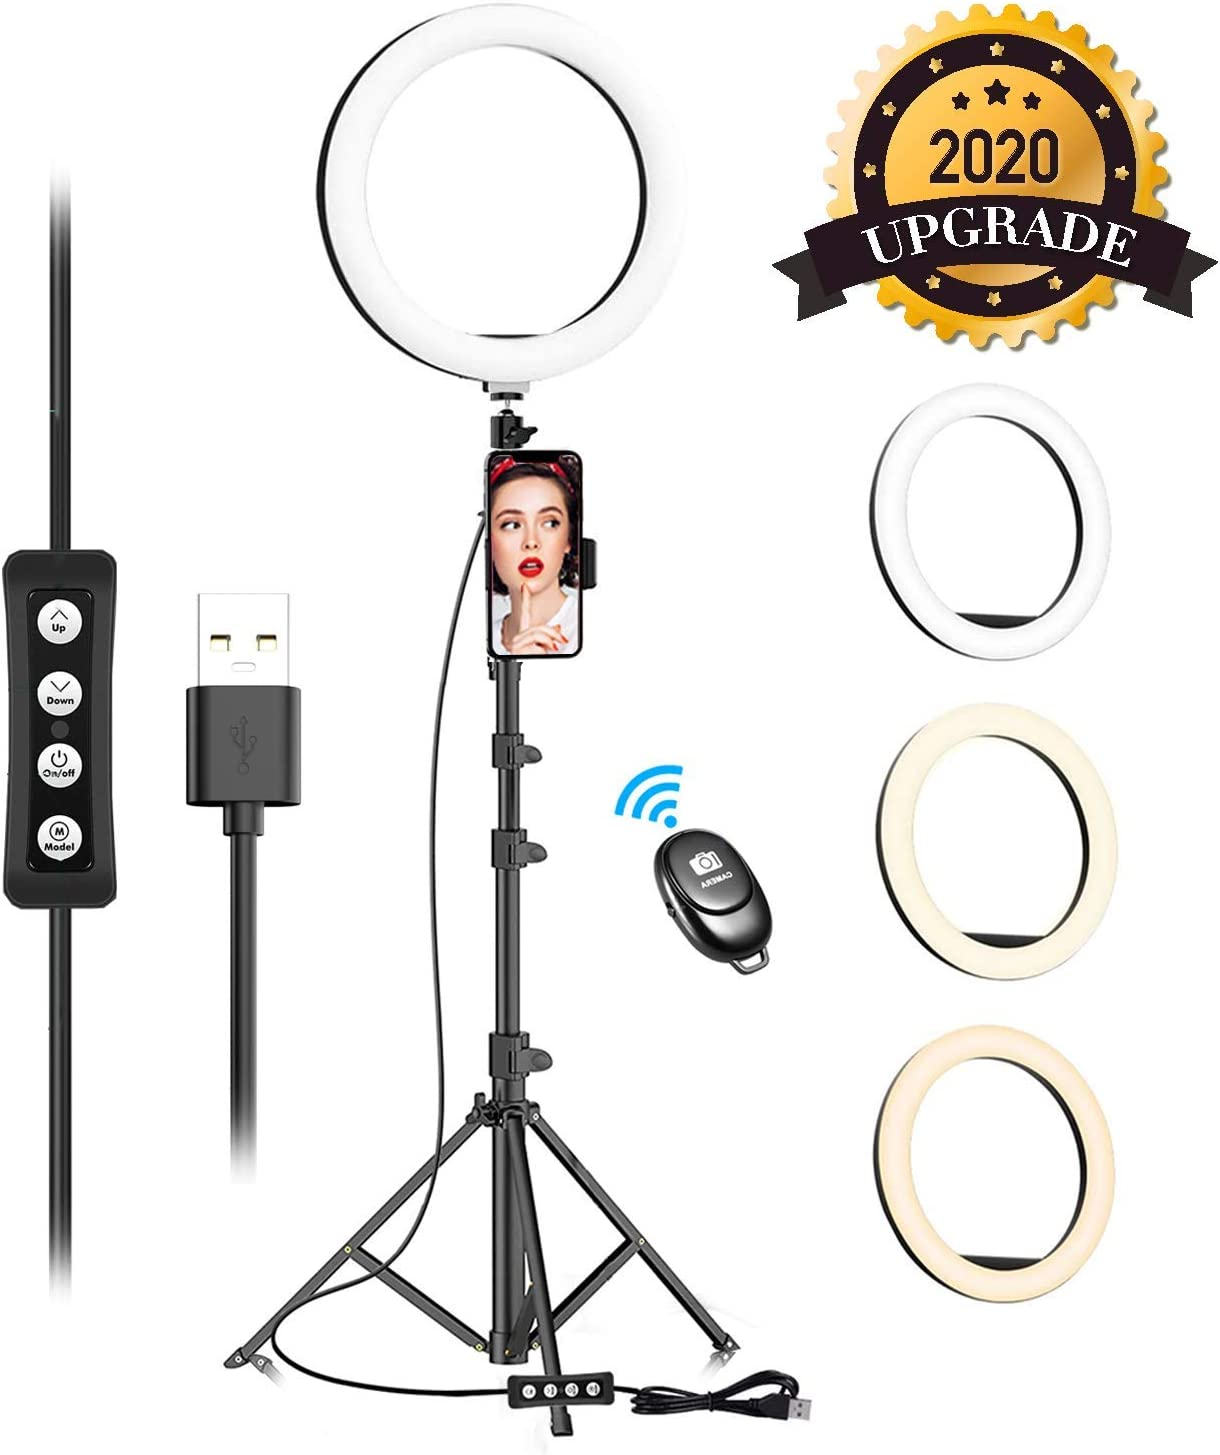 """10"""" Selfie Ring Light with Adjustable Tripod Stand & Phone Holder for Live Stream/Makeup, Upgraded Dimmable LED Camera Ringlight for Tiktok/YouTube/Zoom/Photography, Compatible with iPhone & Android"""